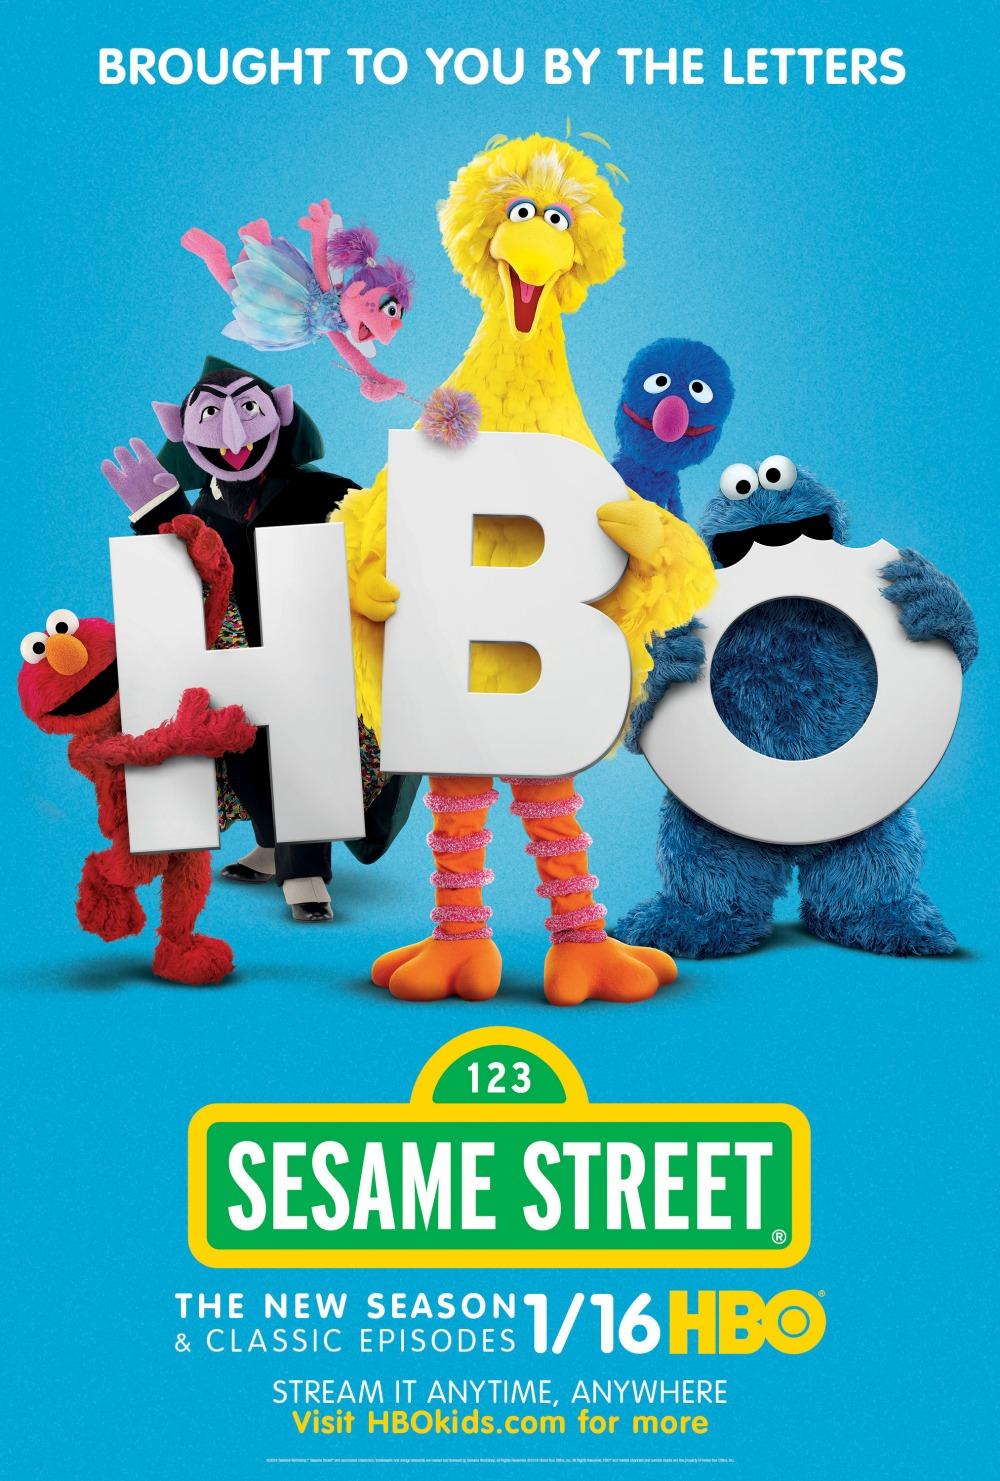 Sesame Street on HBO